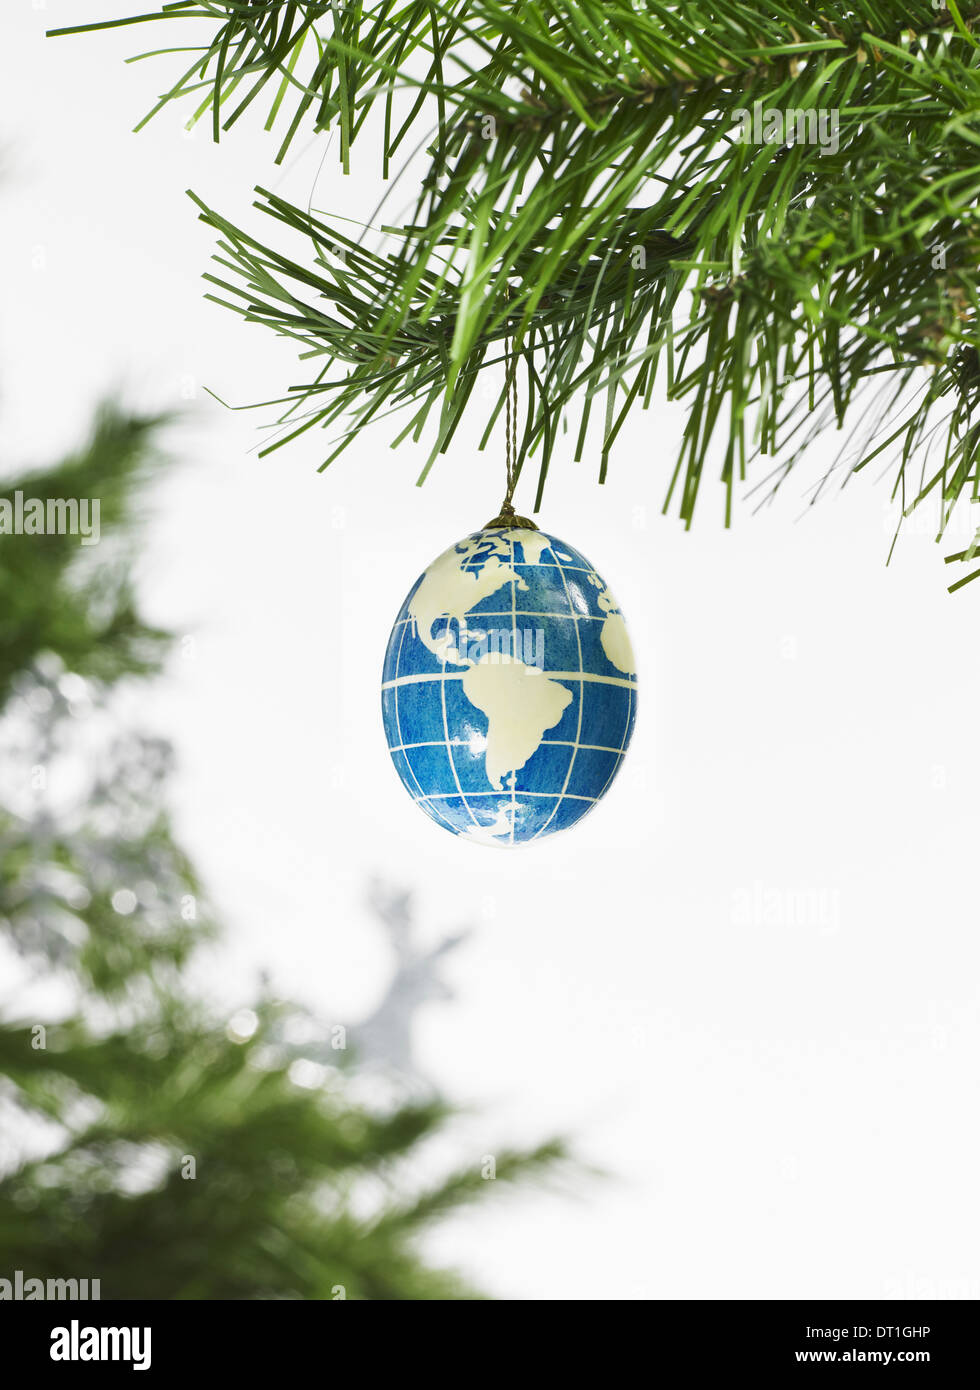 Green leaf foliage and decorations A pine tree branch and a blue and white bauble A globe with continents outlined - Stock Image